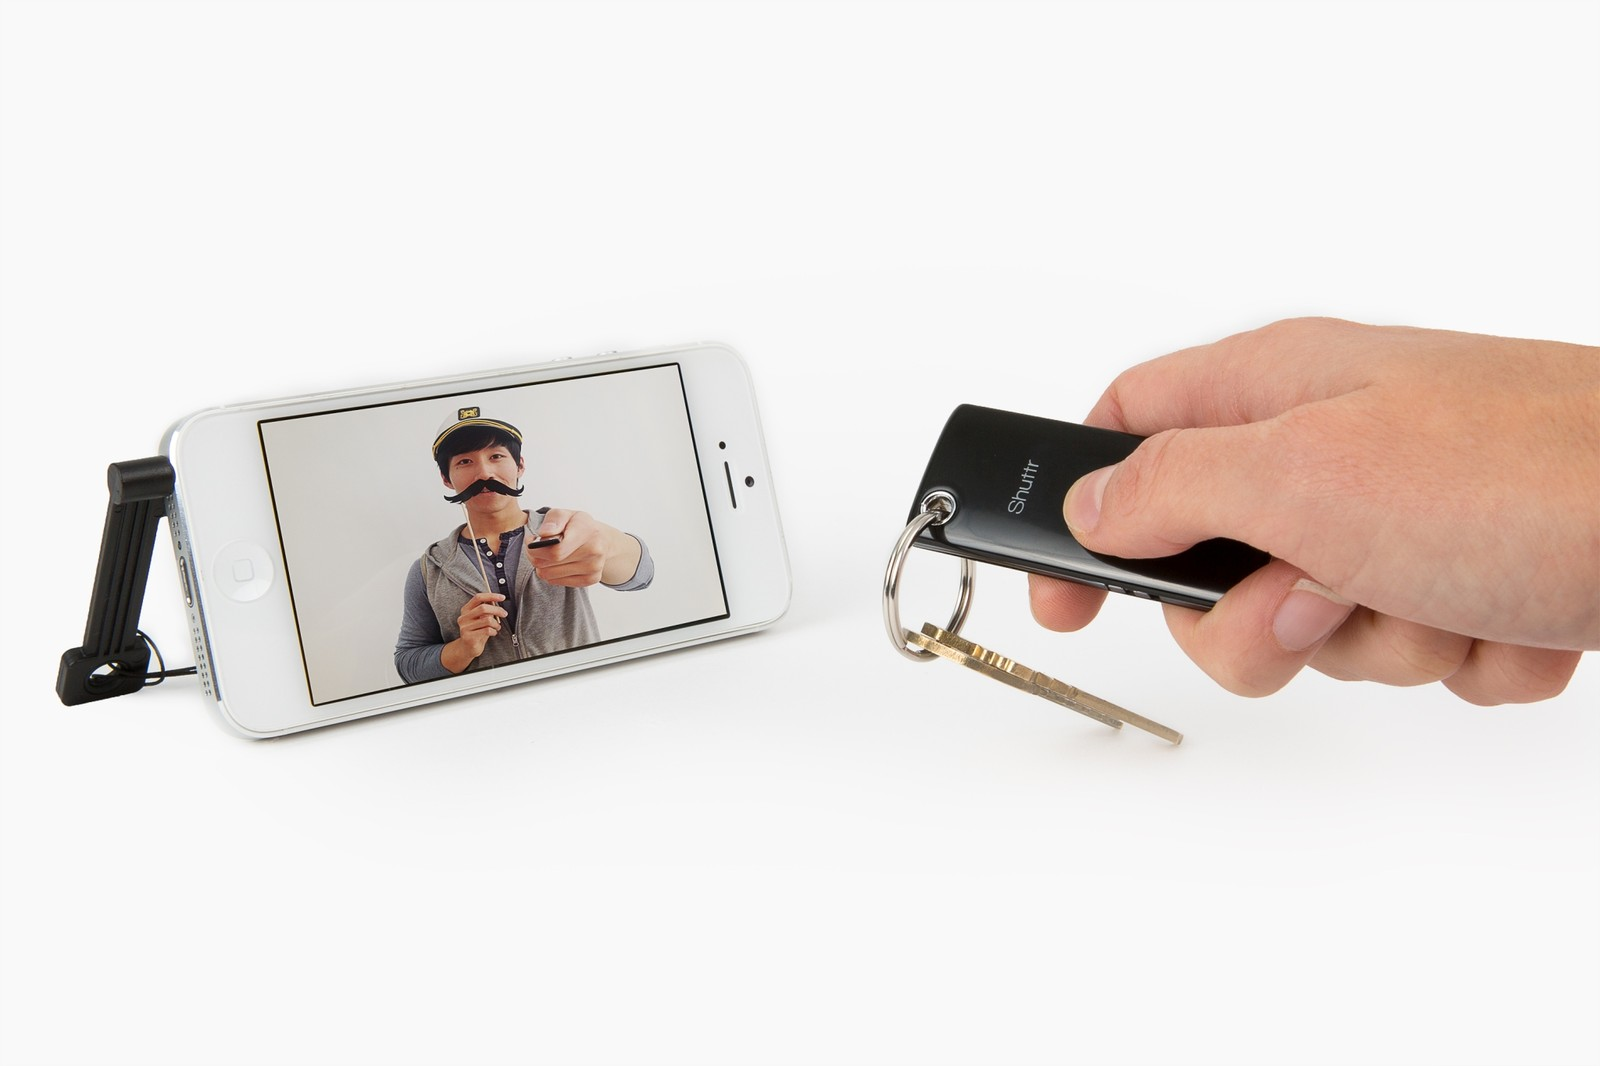 The Muku Shuttr remote is perfect for selfies on the go!